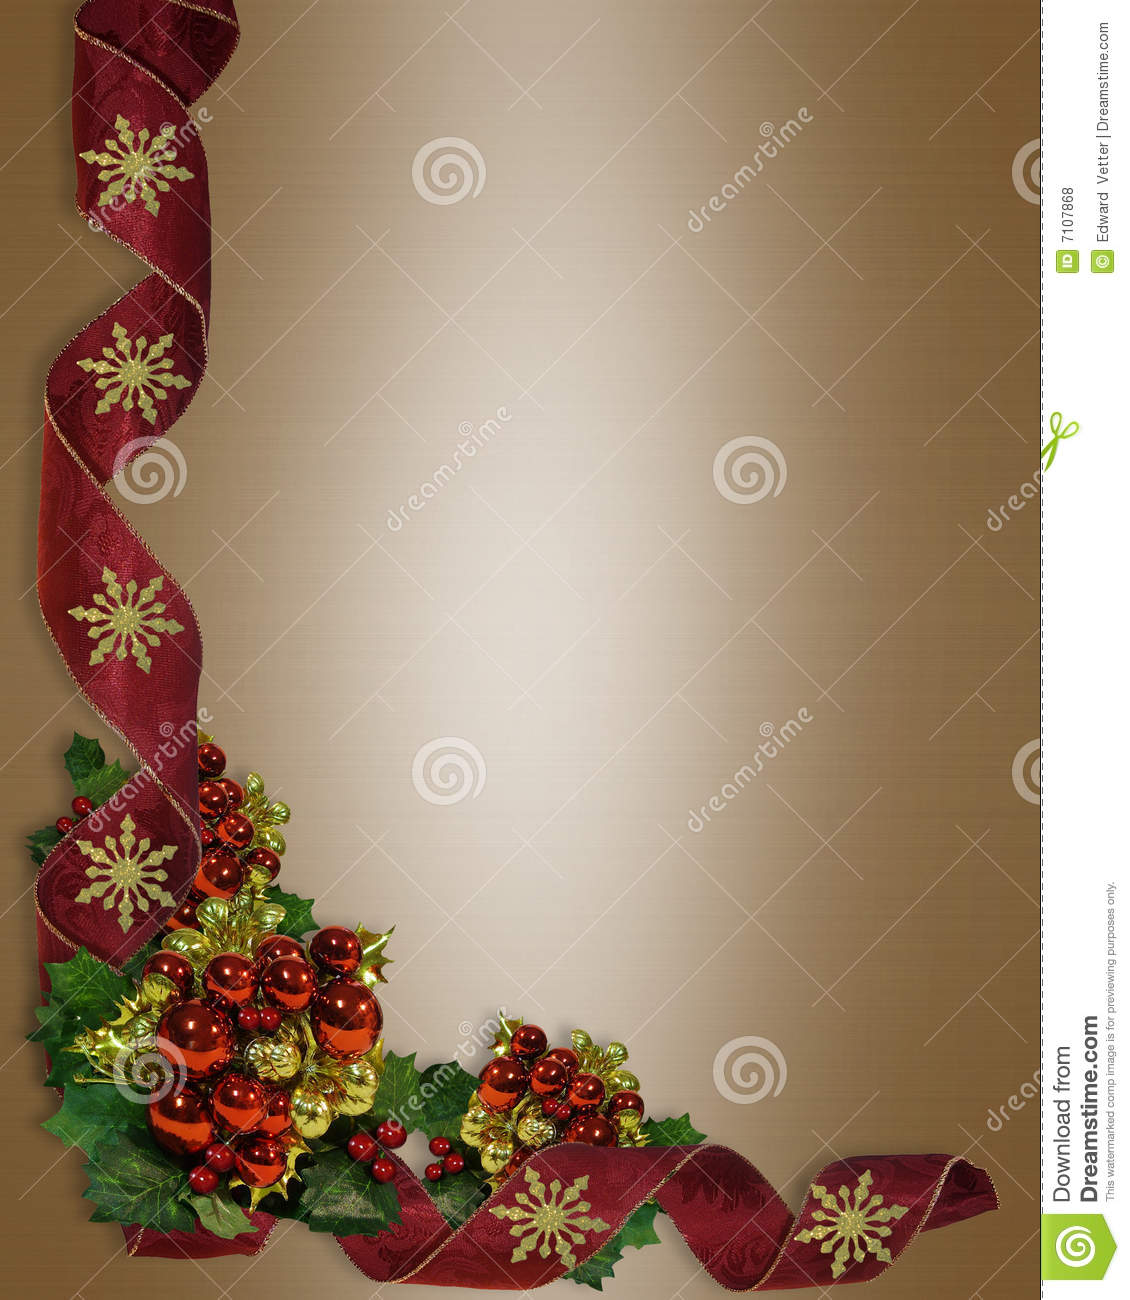 Christmas Border Templates Download Vaulty Pro Download